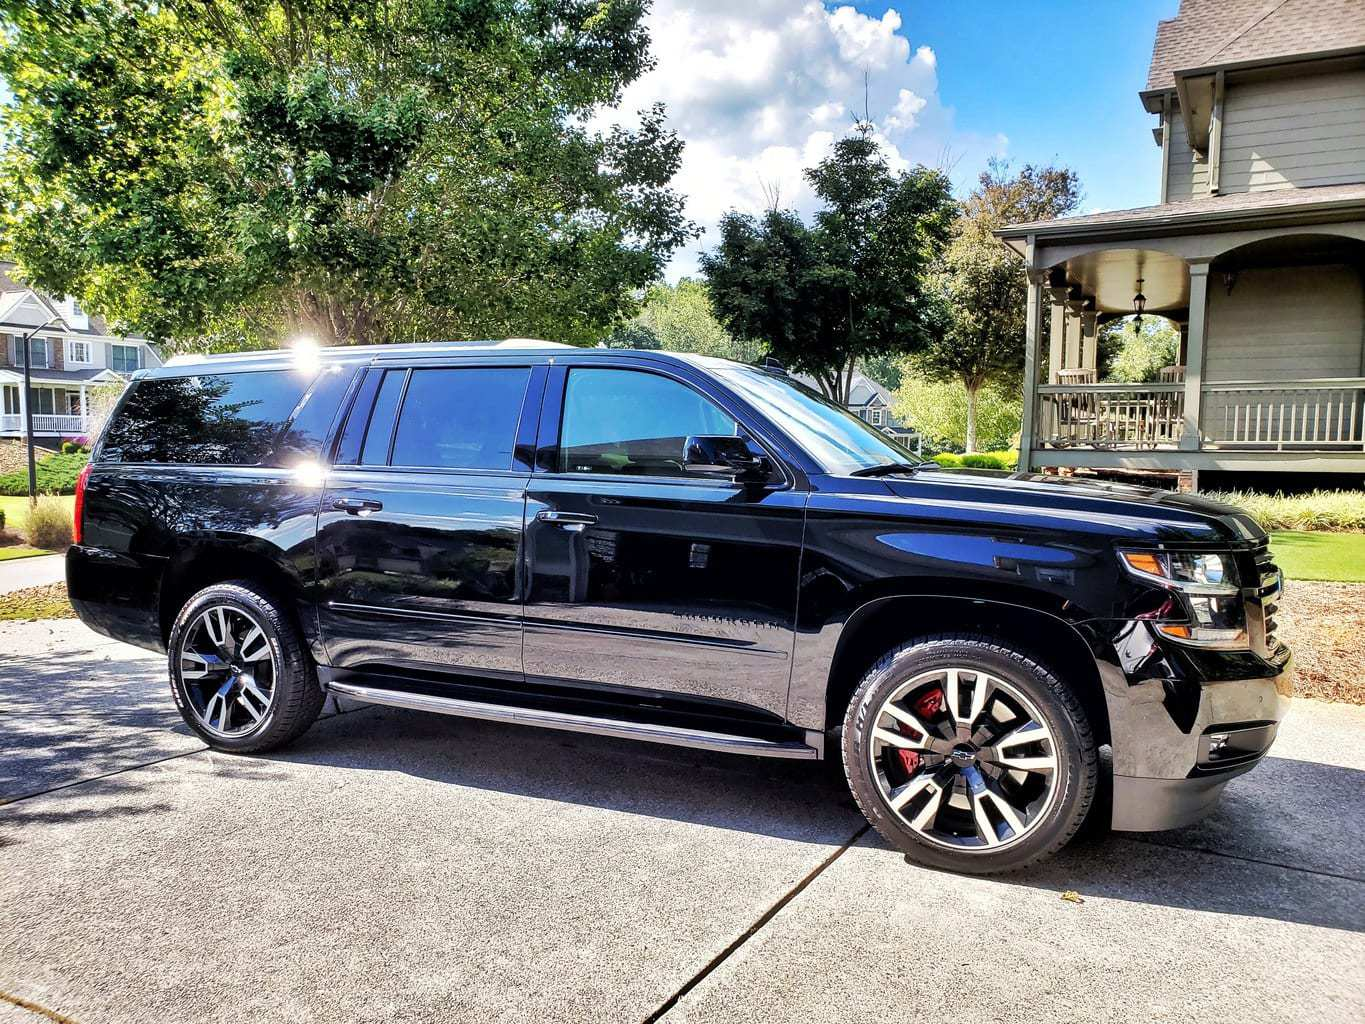 Mom's Perfect Vehicle: 2019 Chevy Suburban – Where Luxury Means Comfort